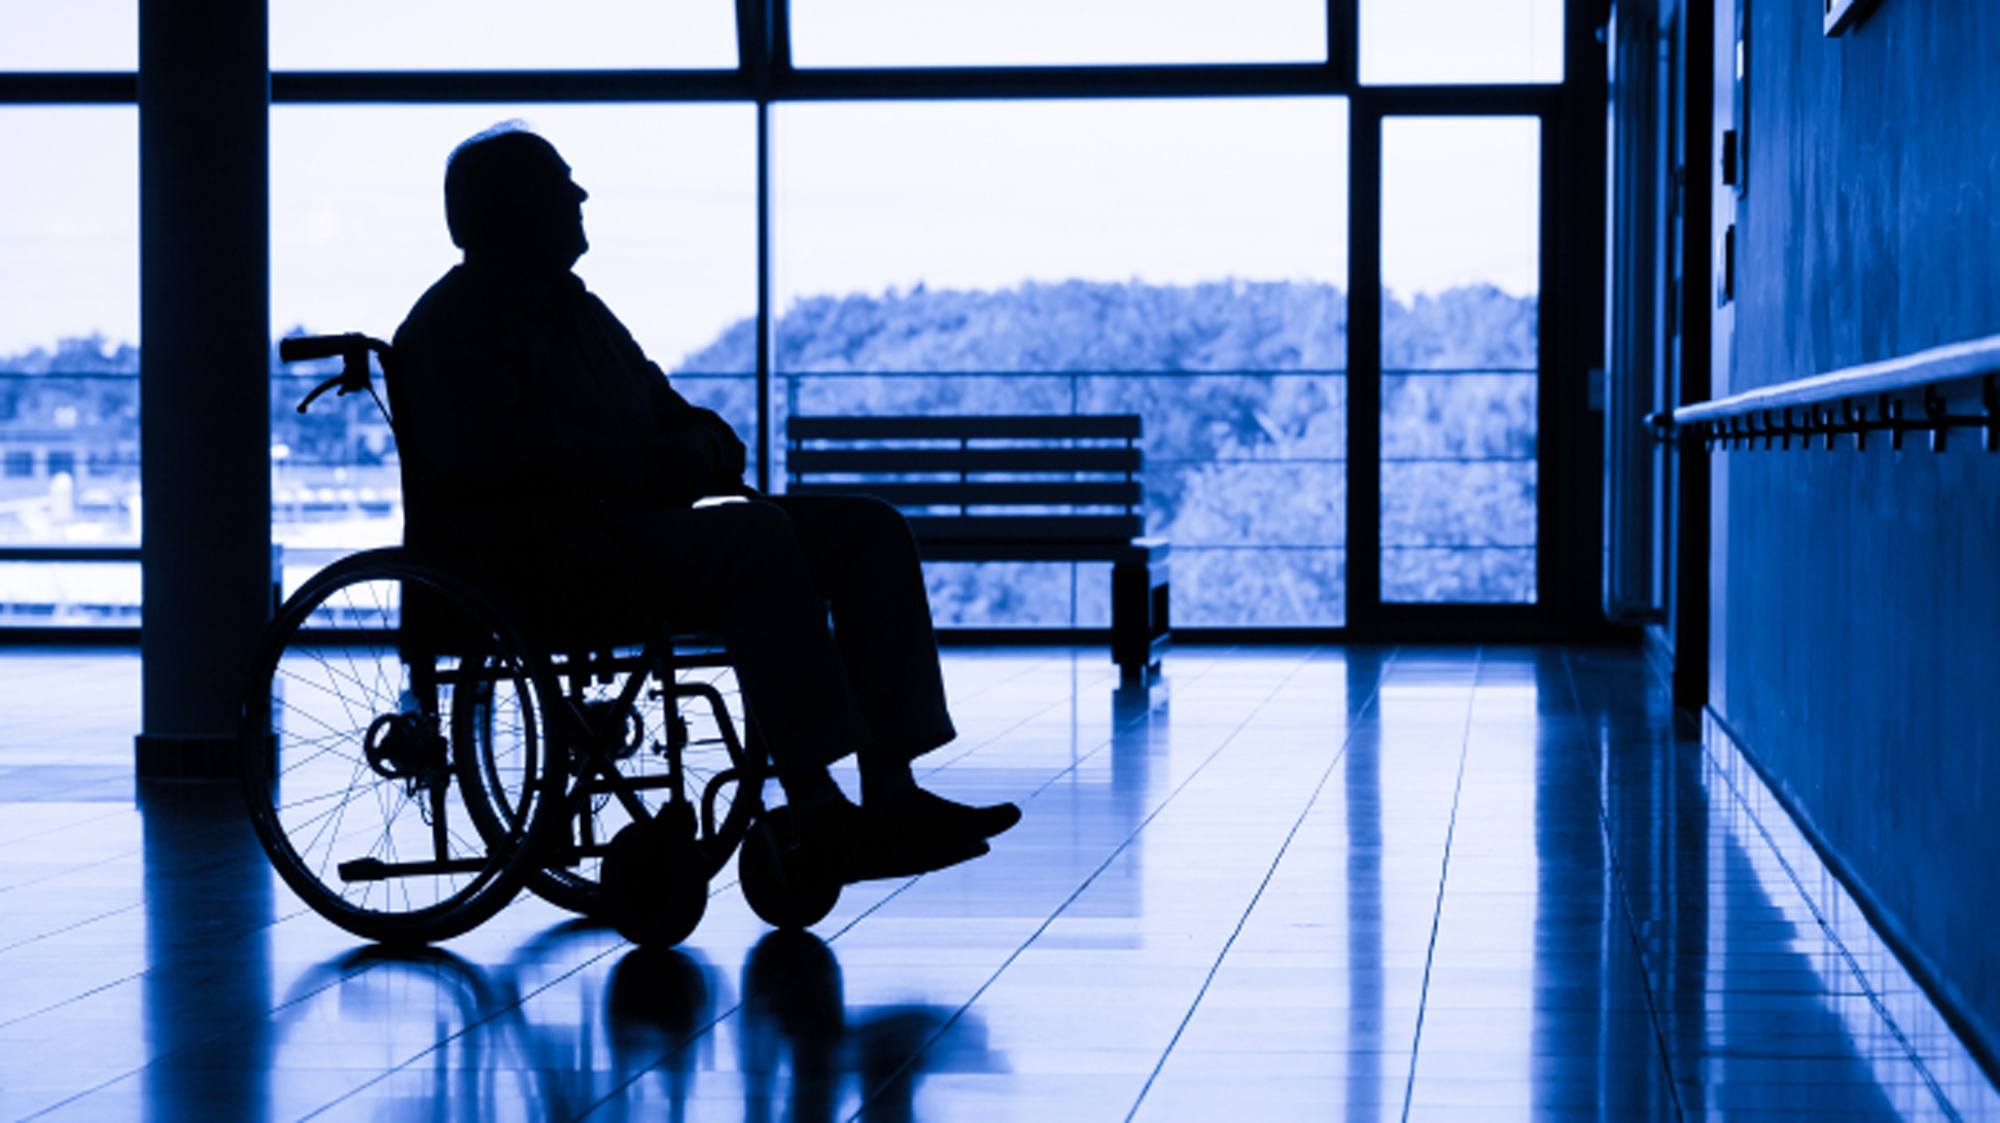 Researchers Developing New Therapy to Treat Parkinson's Disease